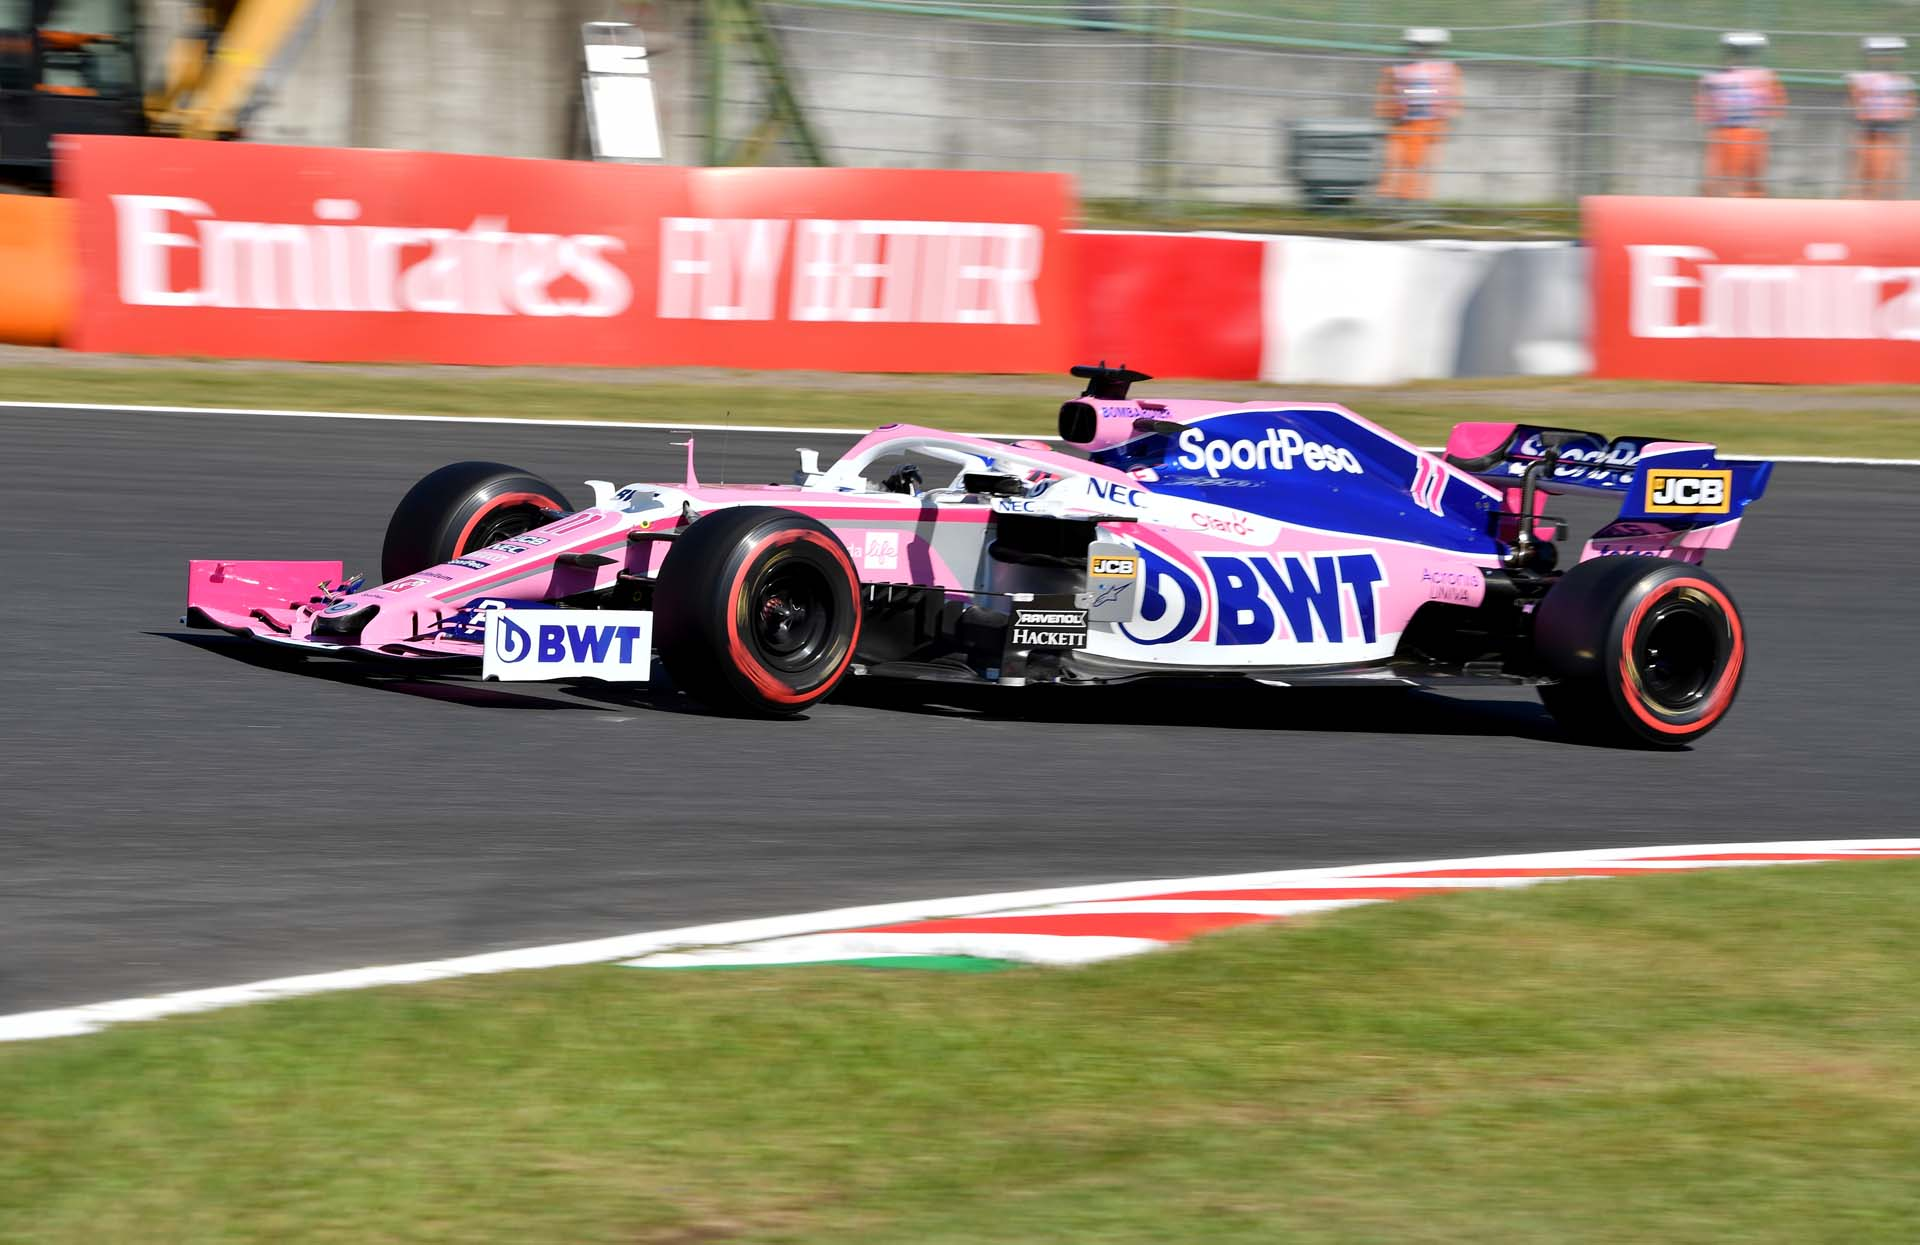 Sergio Perez, Racing Point RP19 during qualifying